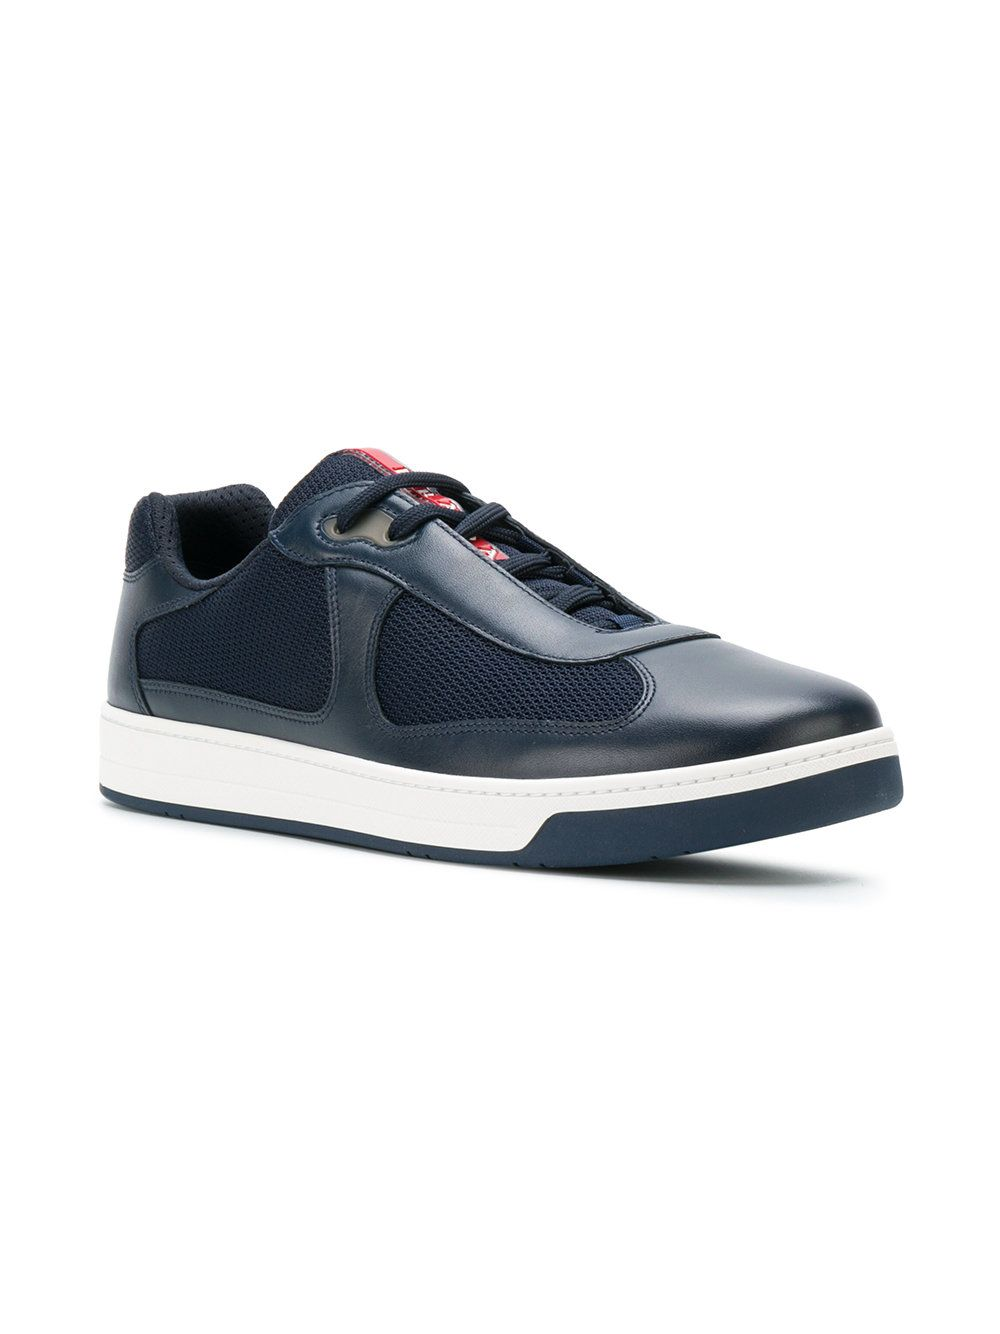 achats Excellente En Ligne Pradalace-up sneakers Footlocker Vente En Ligne Finishline xnqbZ